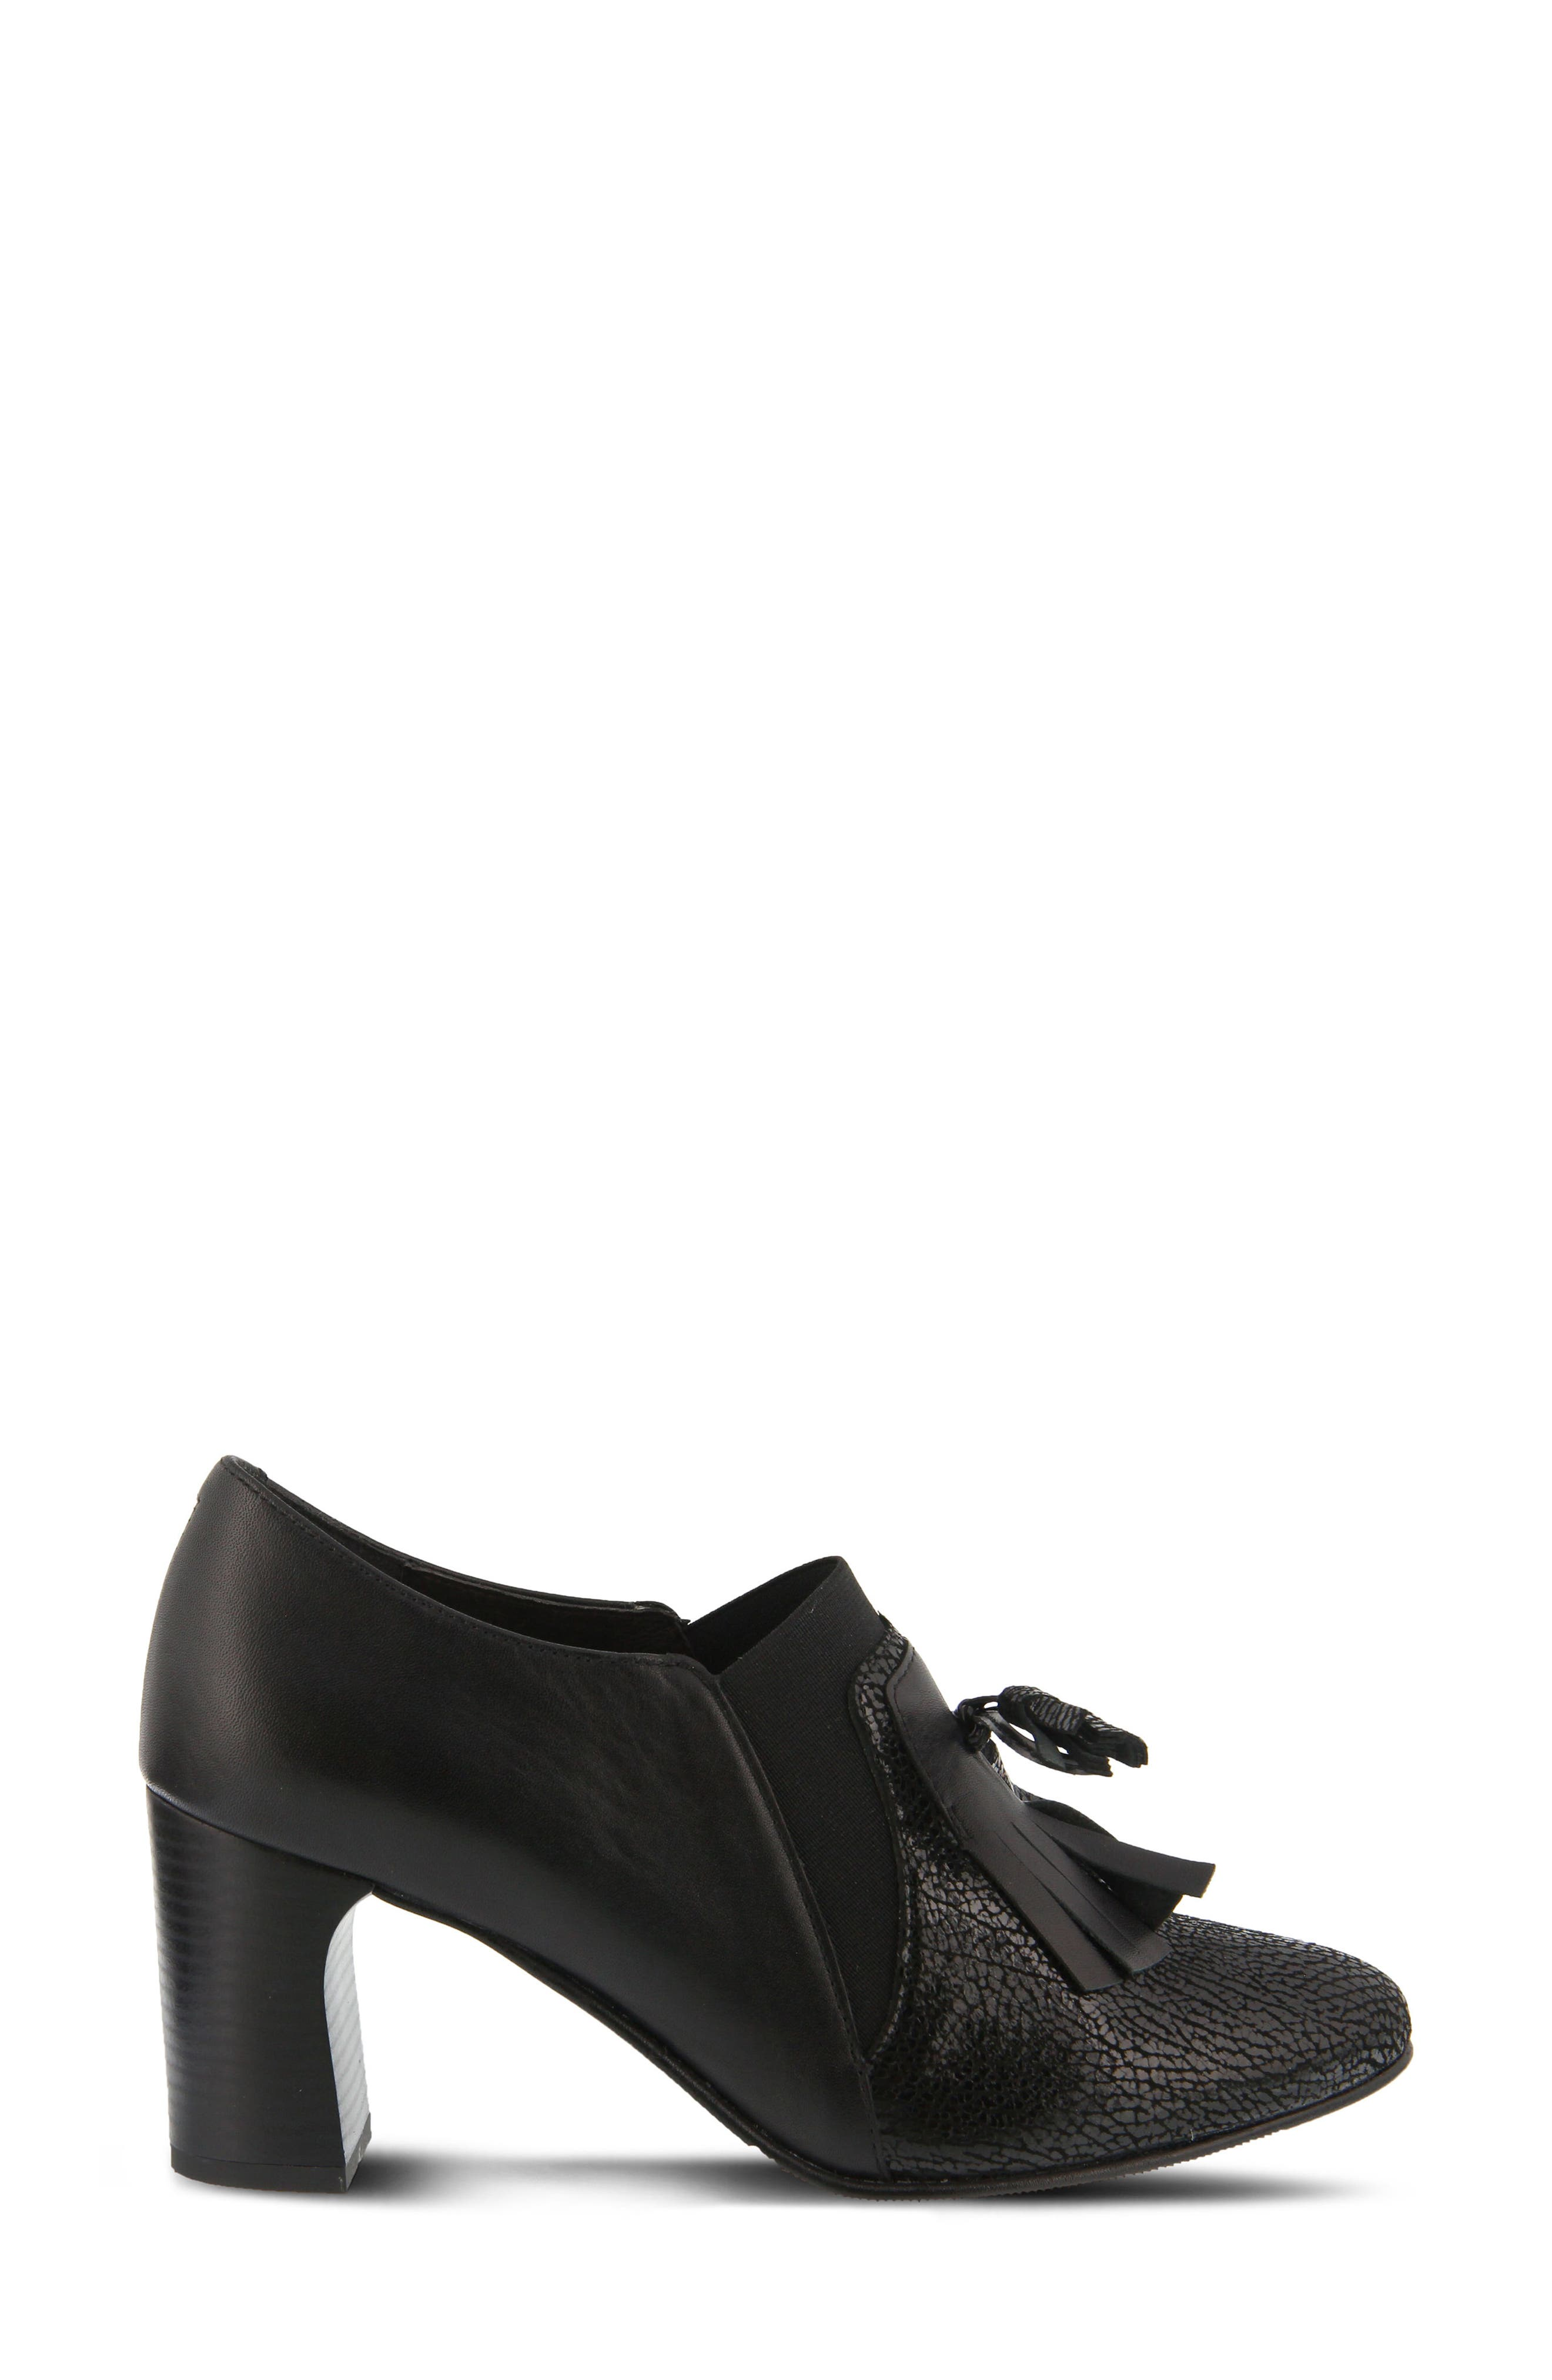 Conquer Foldover Cuff Bootie,                             Alternate thumbnail 3, color,                             Black Leather